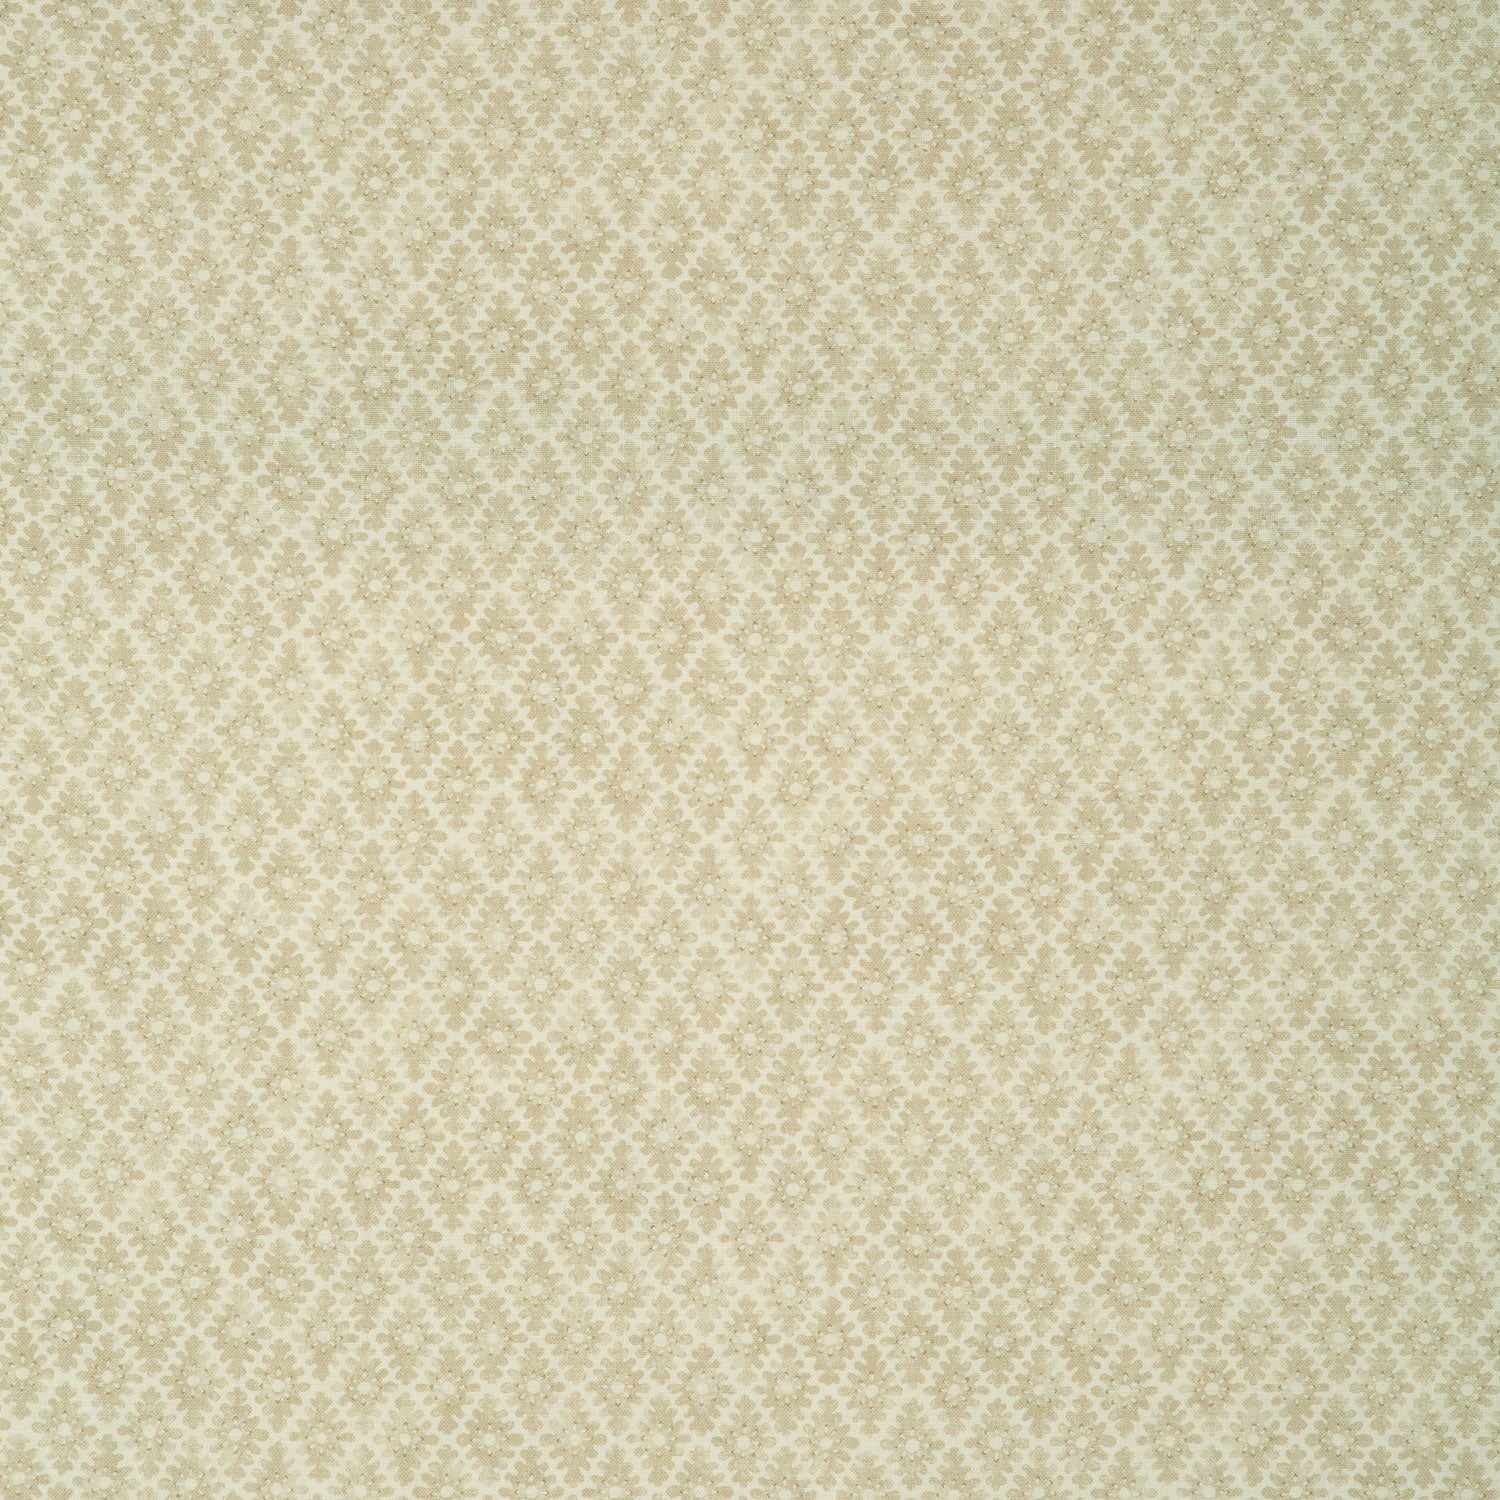 Fabric sample of a light yellow and neutral printed linen fabric for curtains and upholstery